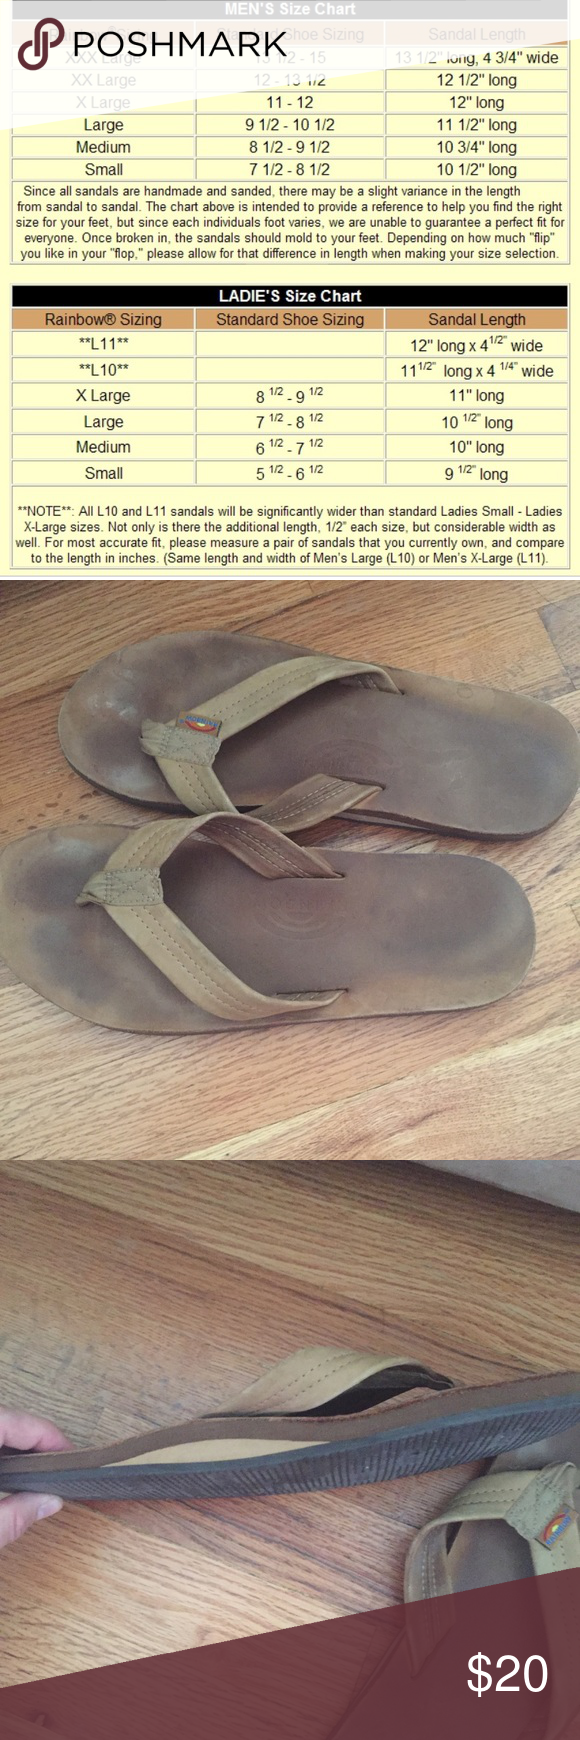 Men S Rainbow Sandals Rainbow Sandals Sandals Rainbow Shoes